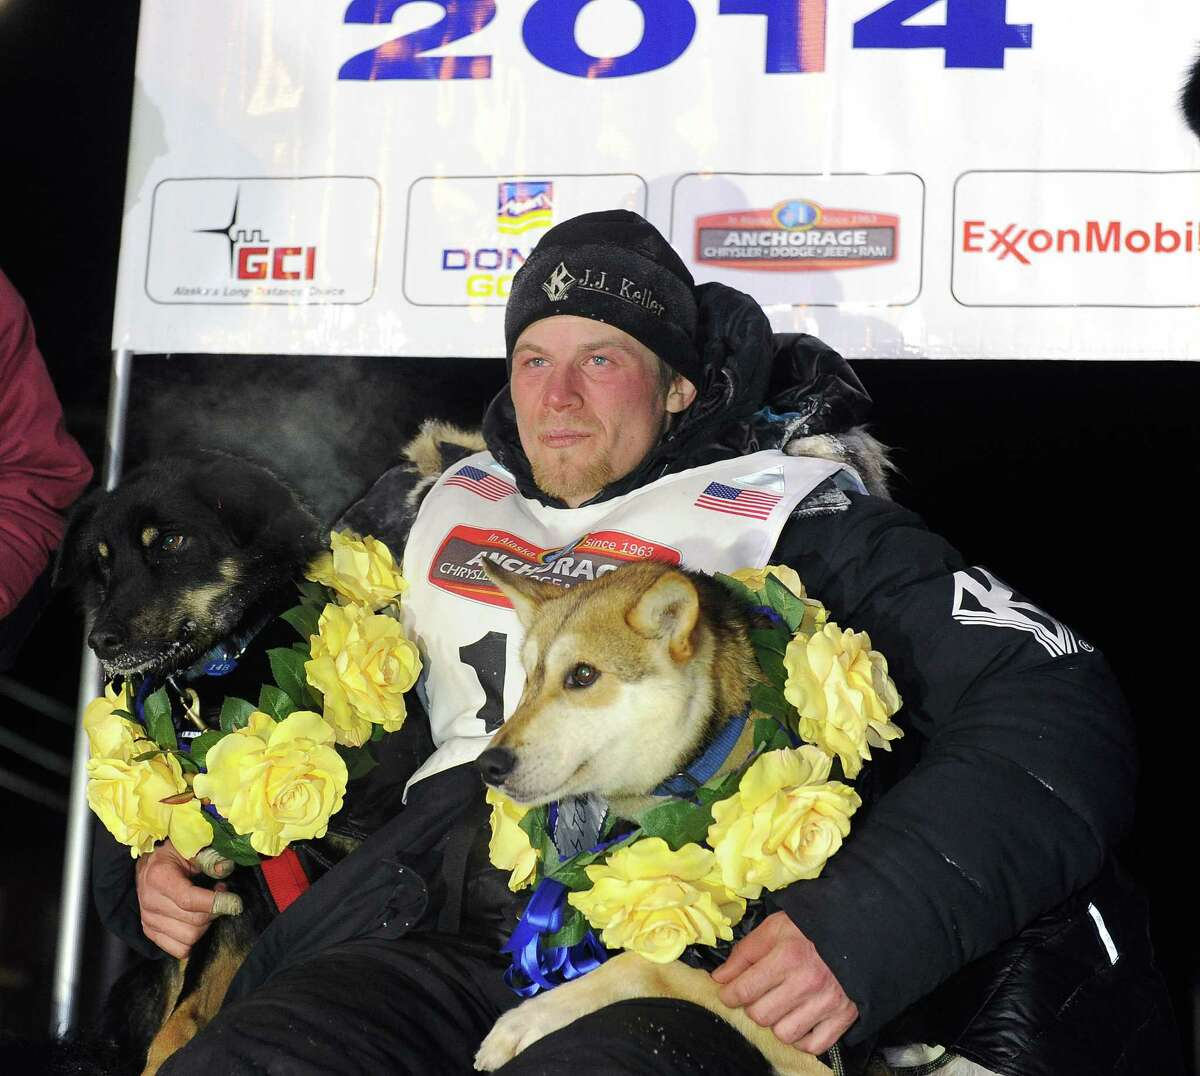 Dallas Seavey sits under the burled arch in Nome, Alaska after winning the 2014 Iditarod Trail Sled Dog Race, Tuesday, March 11, 2014. (AP Photo/The Anchorage Daily News, Bob Hallinen) LOCAL TV OUT (KTUU-TV, KTVA-TV) LOCAL PRINT OUT (THE ANCHORAGE PRESS, THE ALASKA DISPATCH) ORG XMIT: AKAND201